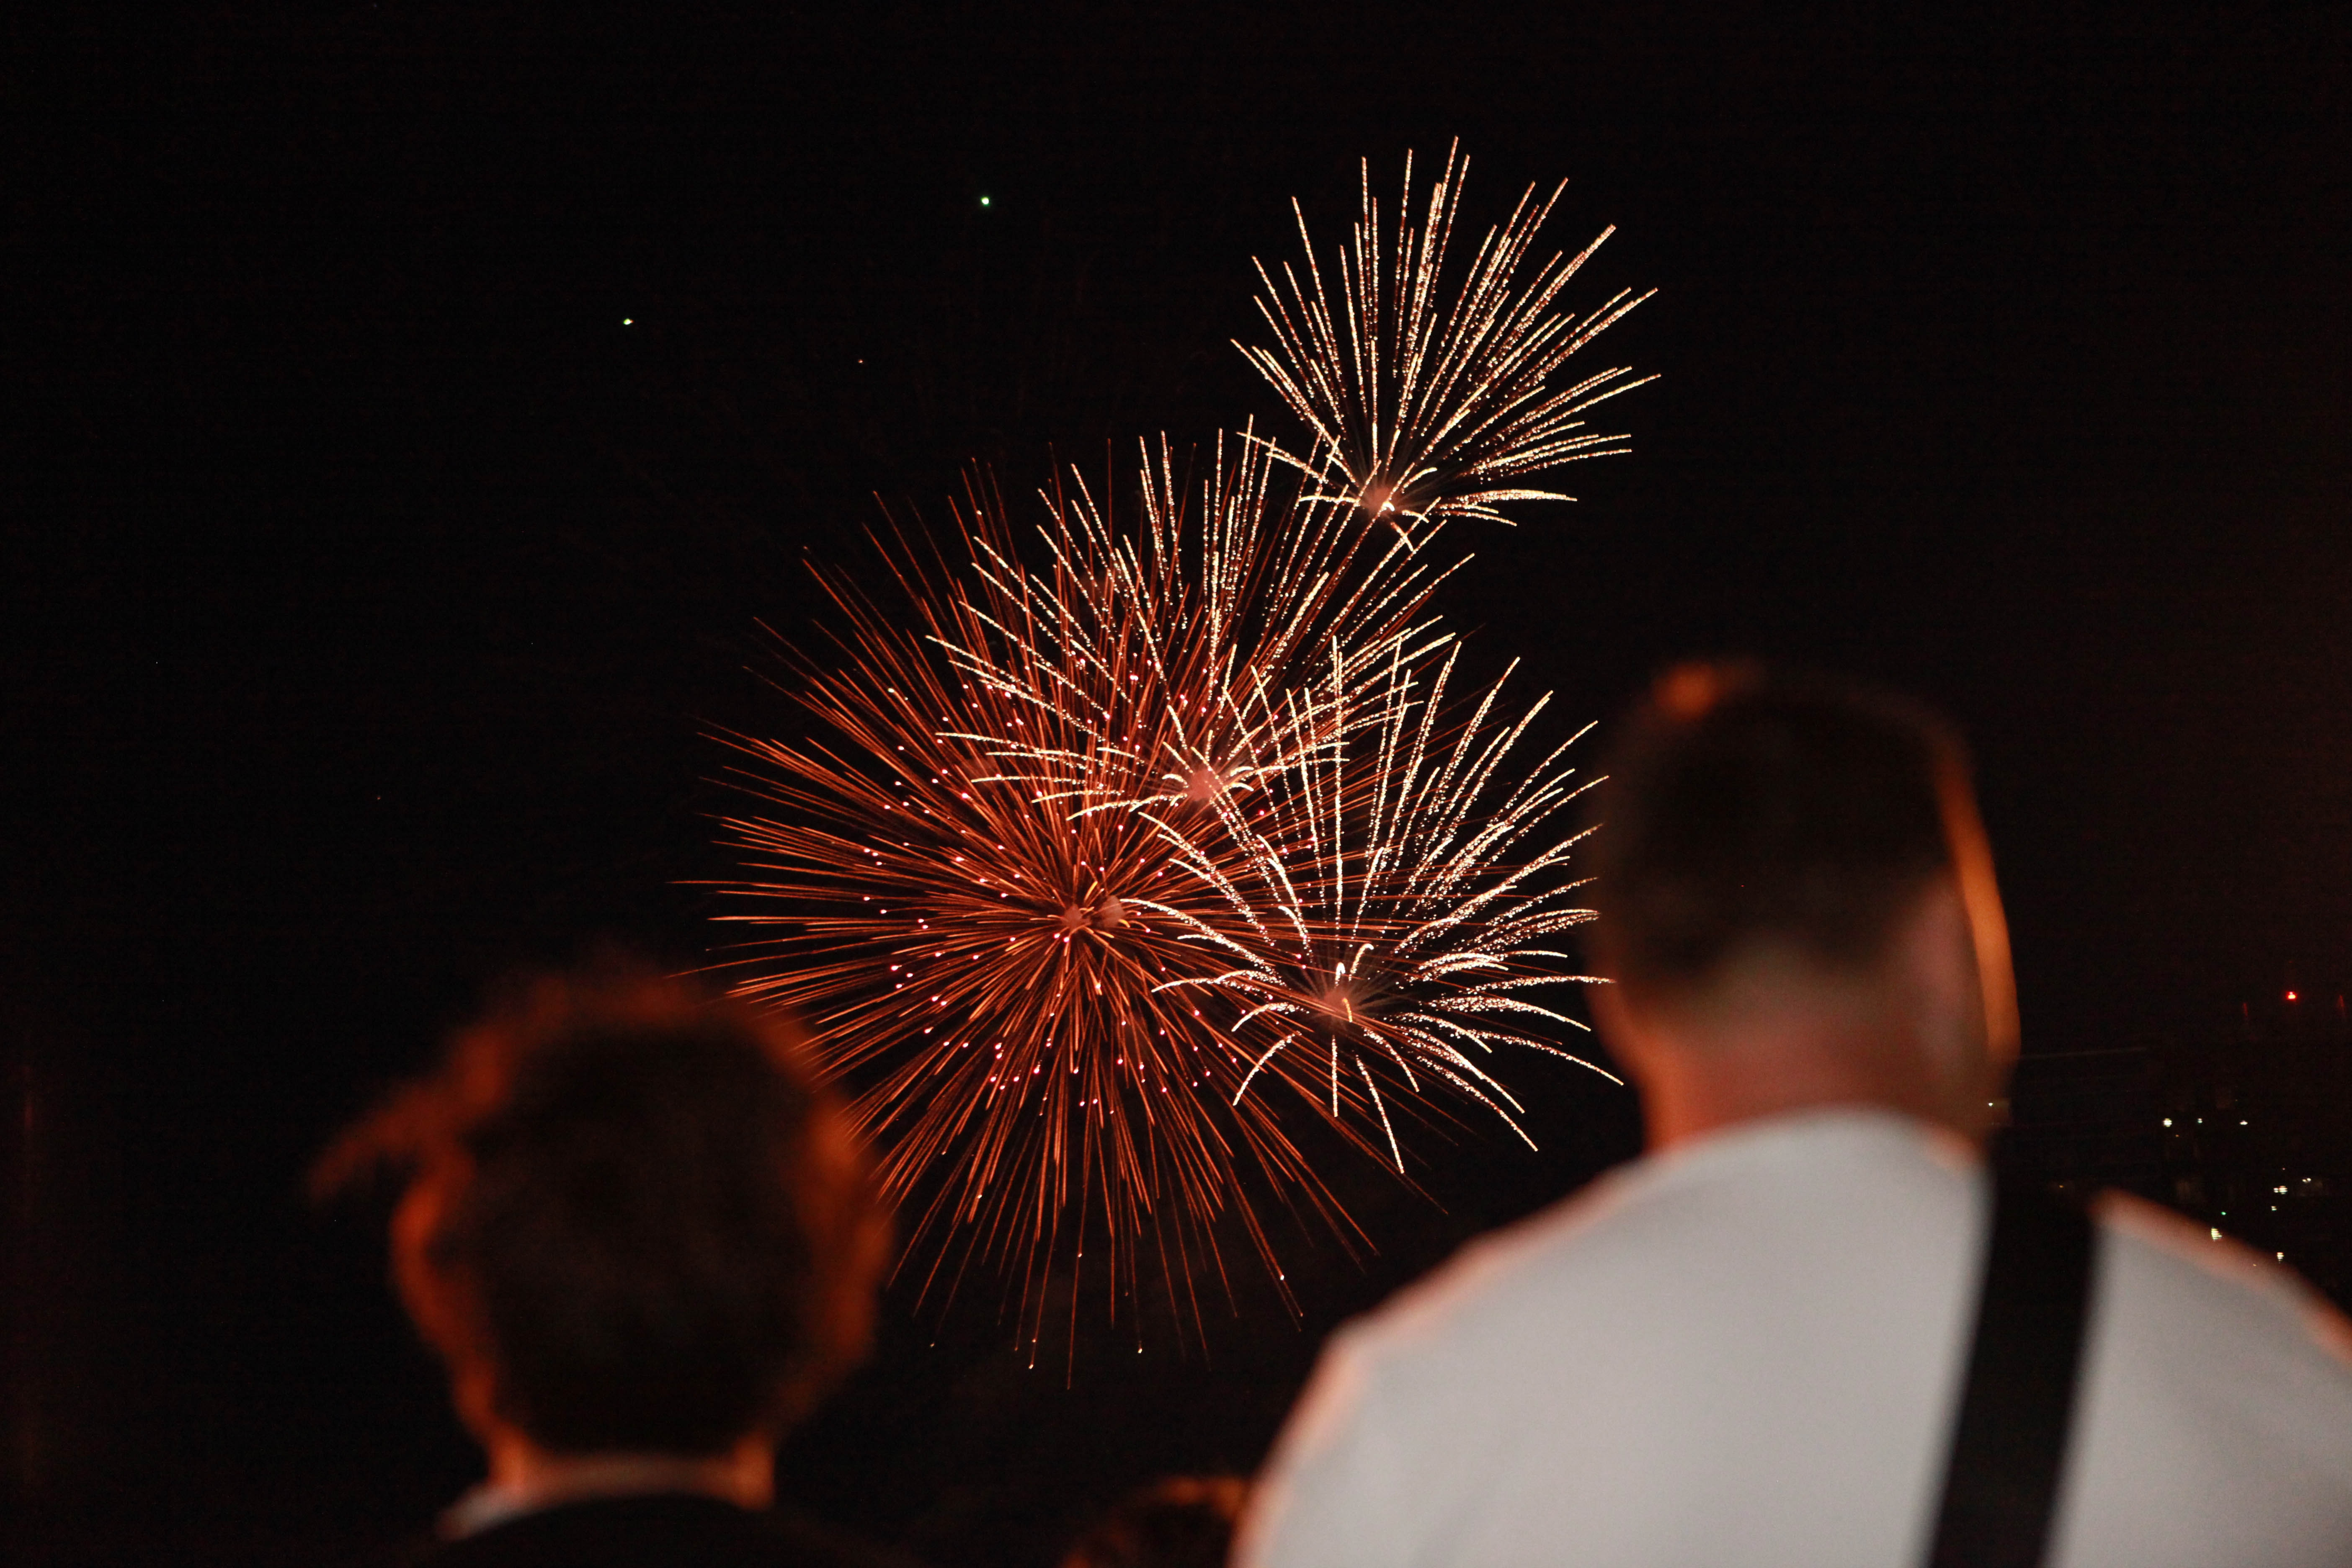 This year's July Fourth fireworks over Canalside begin at 10 p.m., but get there in the afternoon for music, children's activities, food trucks, a beer garden and a feeling of community combined with history and patriotism.